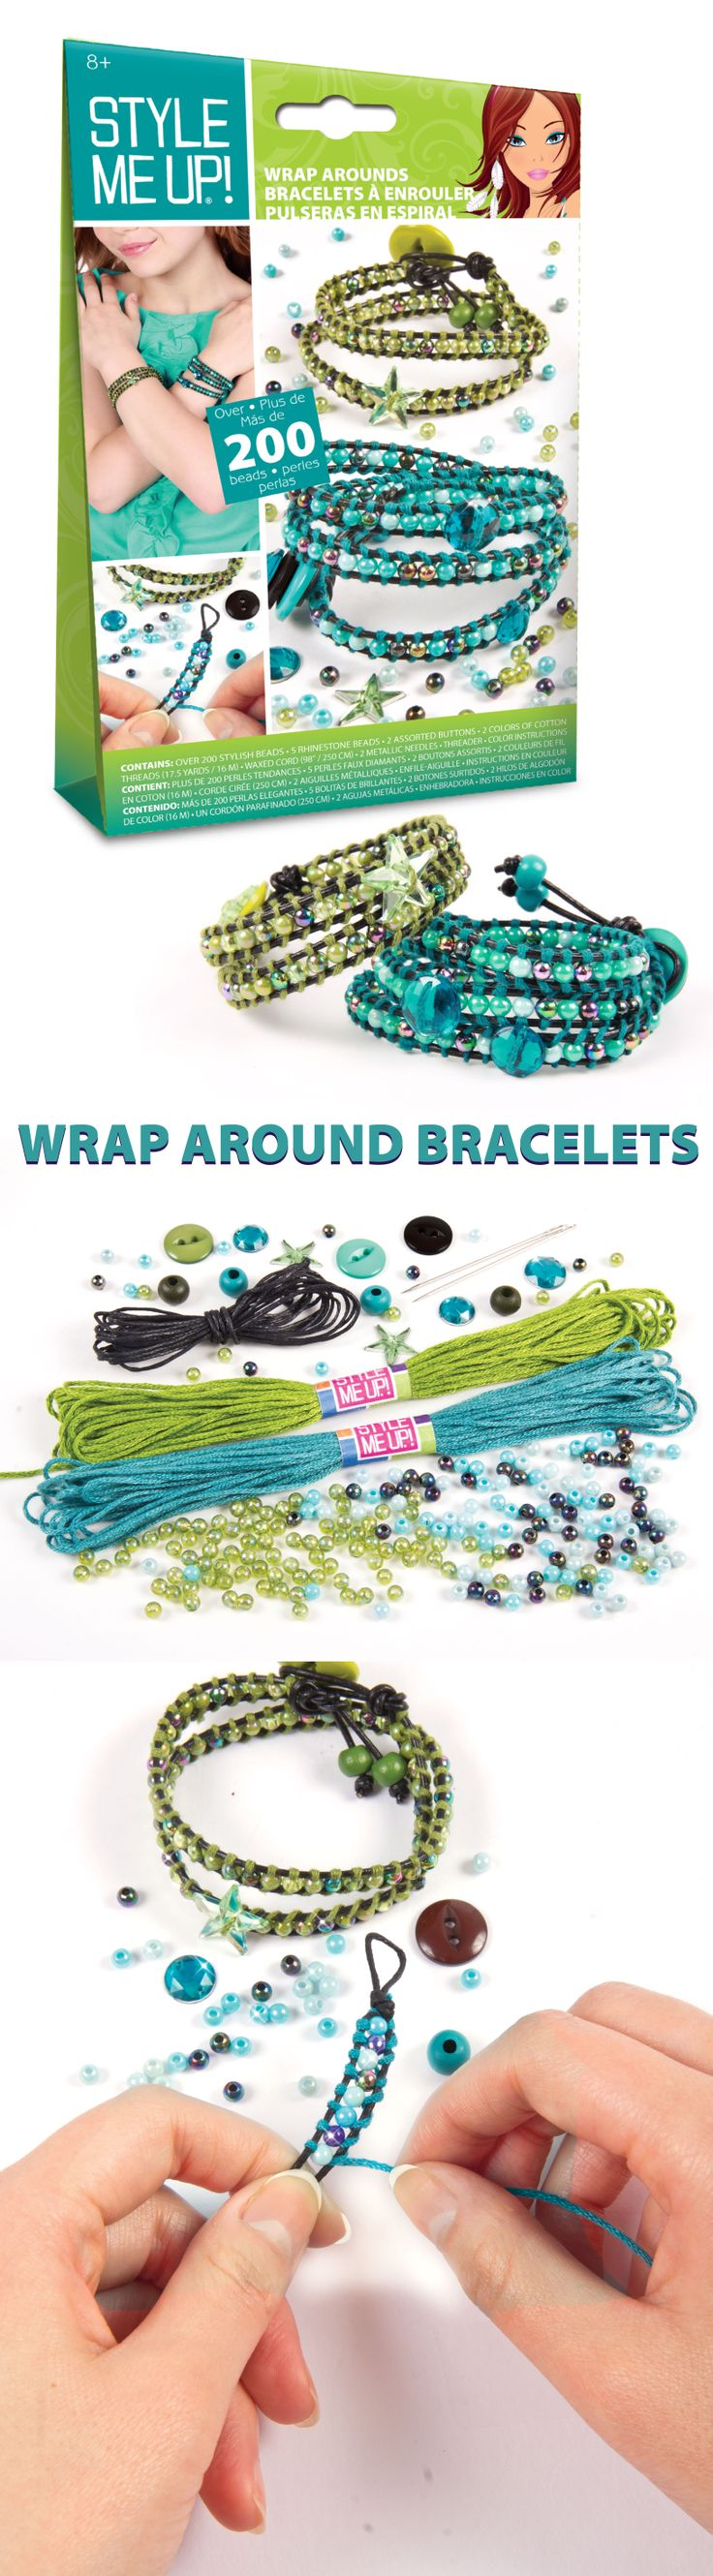 Get the layered look with only one bracelet! Over 200 stylish beads included